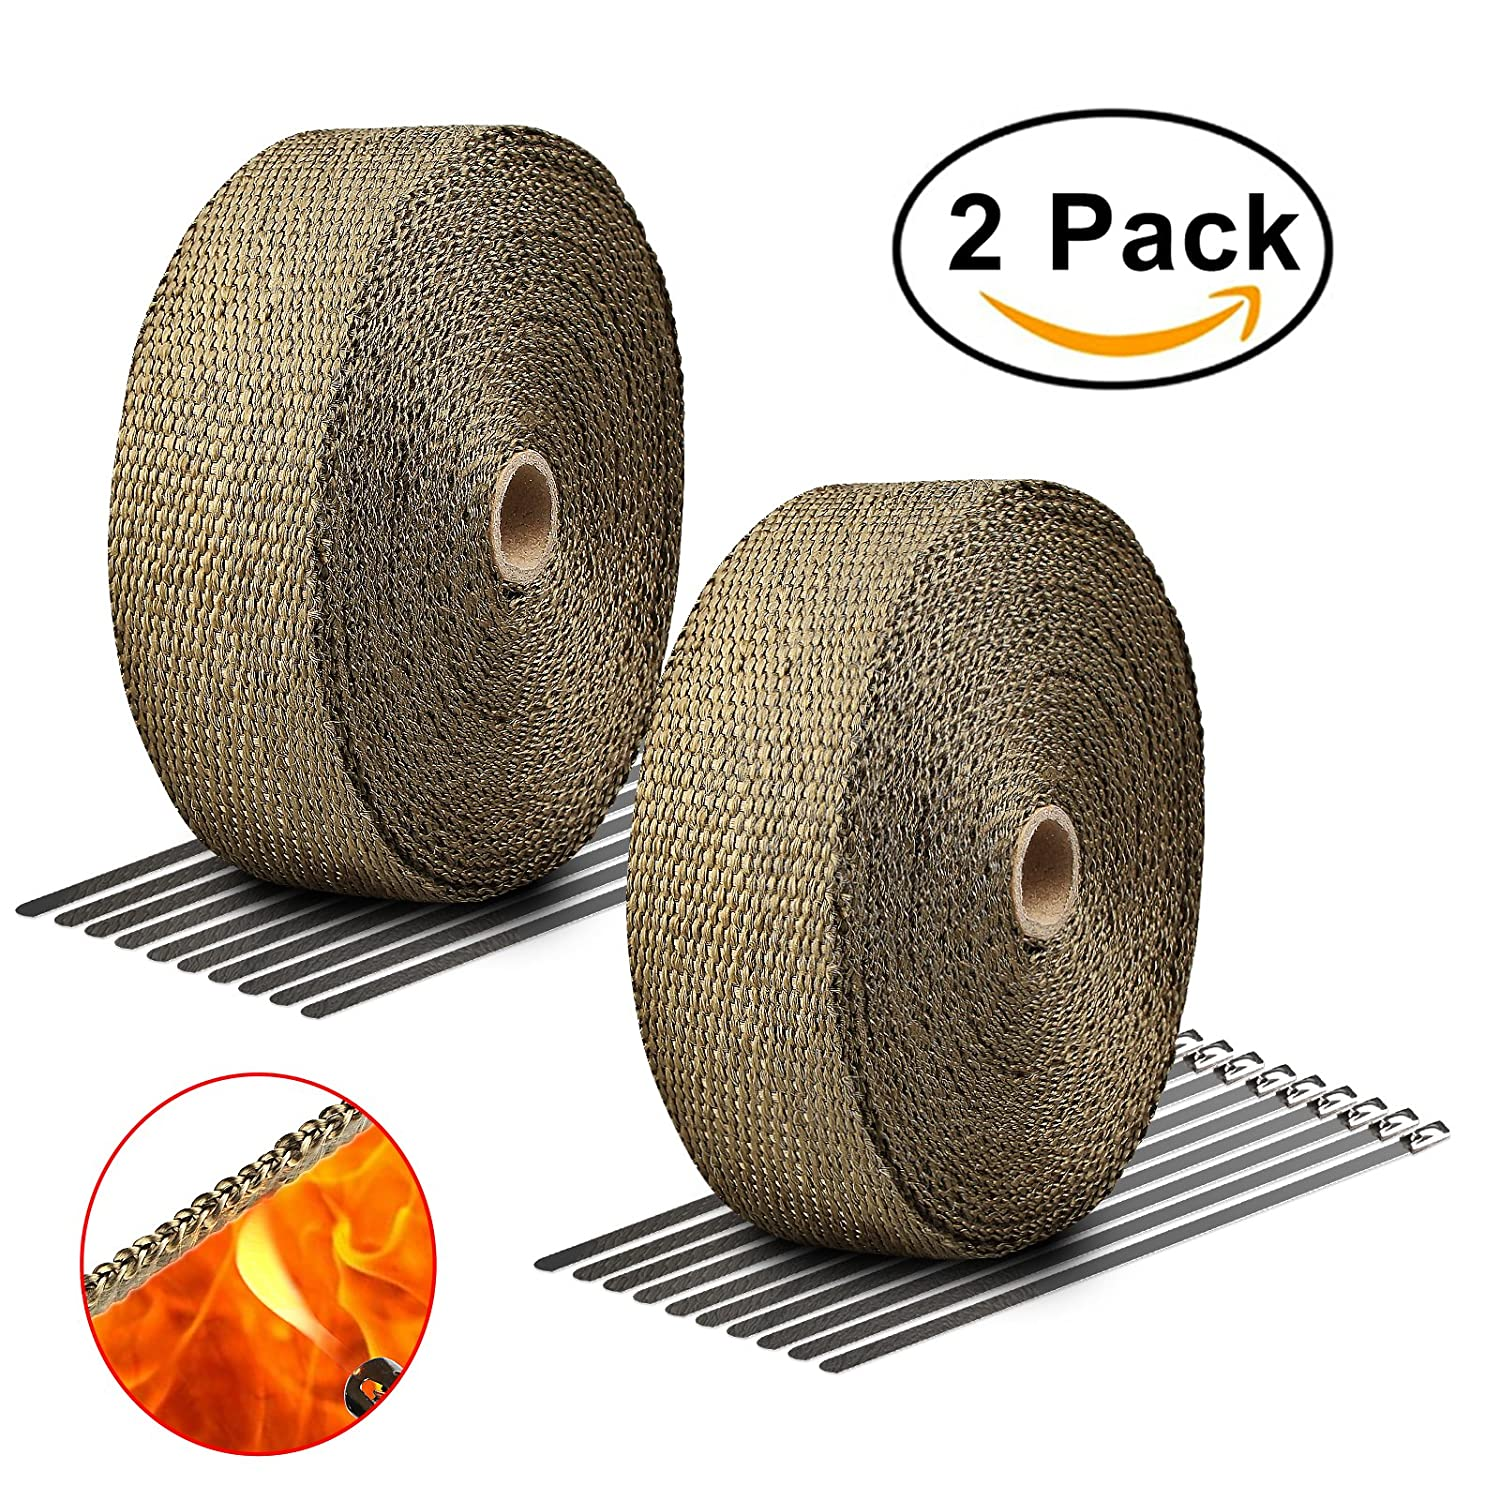 "Exhaust Wrap Titanium LIBERRWAY 2""x50Ft Heat Wrap Tap Header Glassfiber for Car Motorcycle + 10 Stainless Ties 2 Pack"